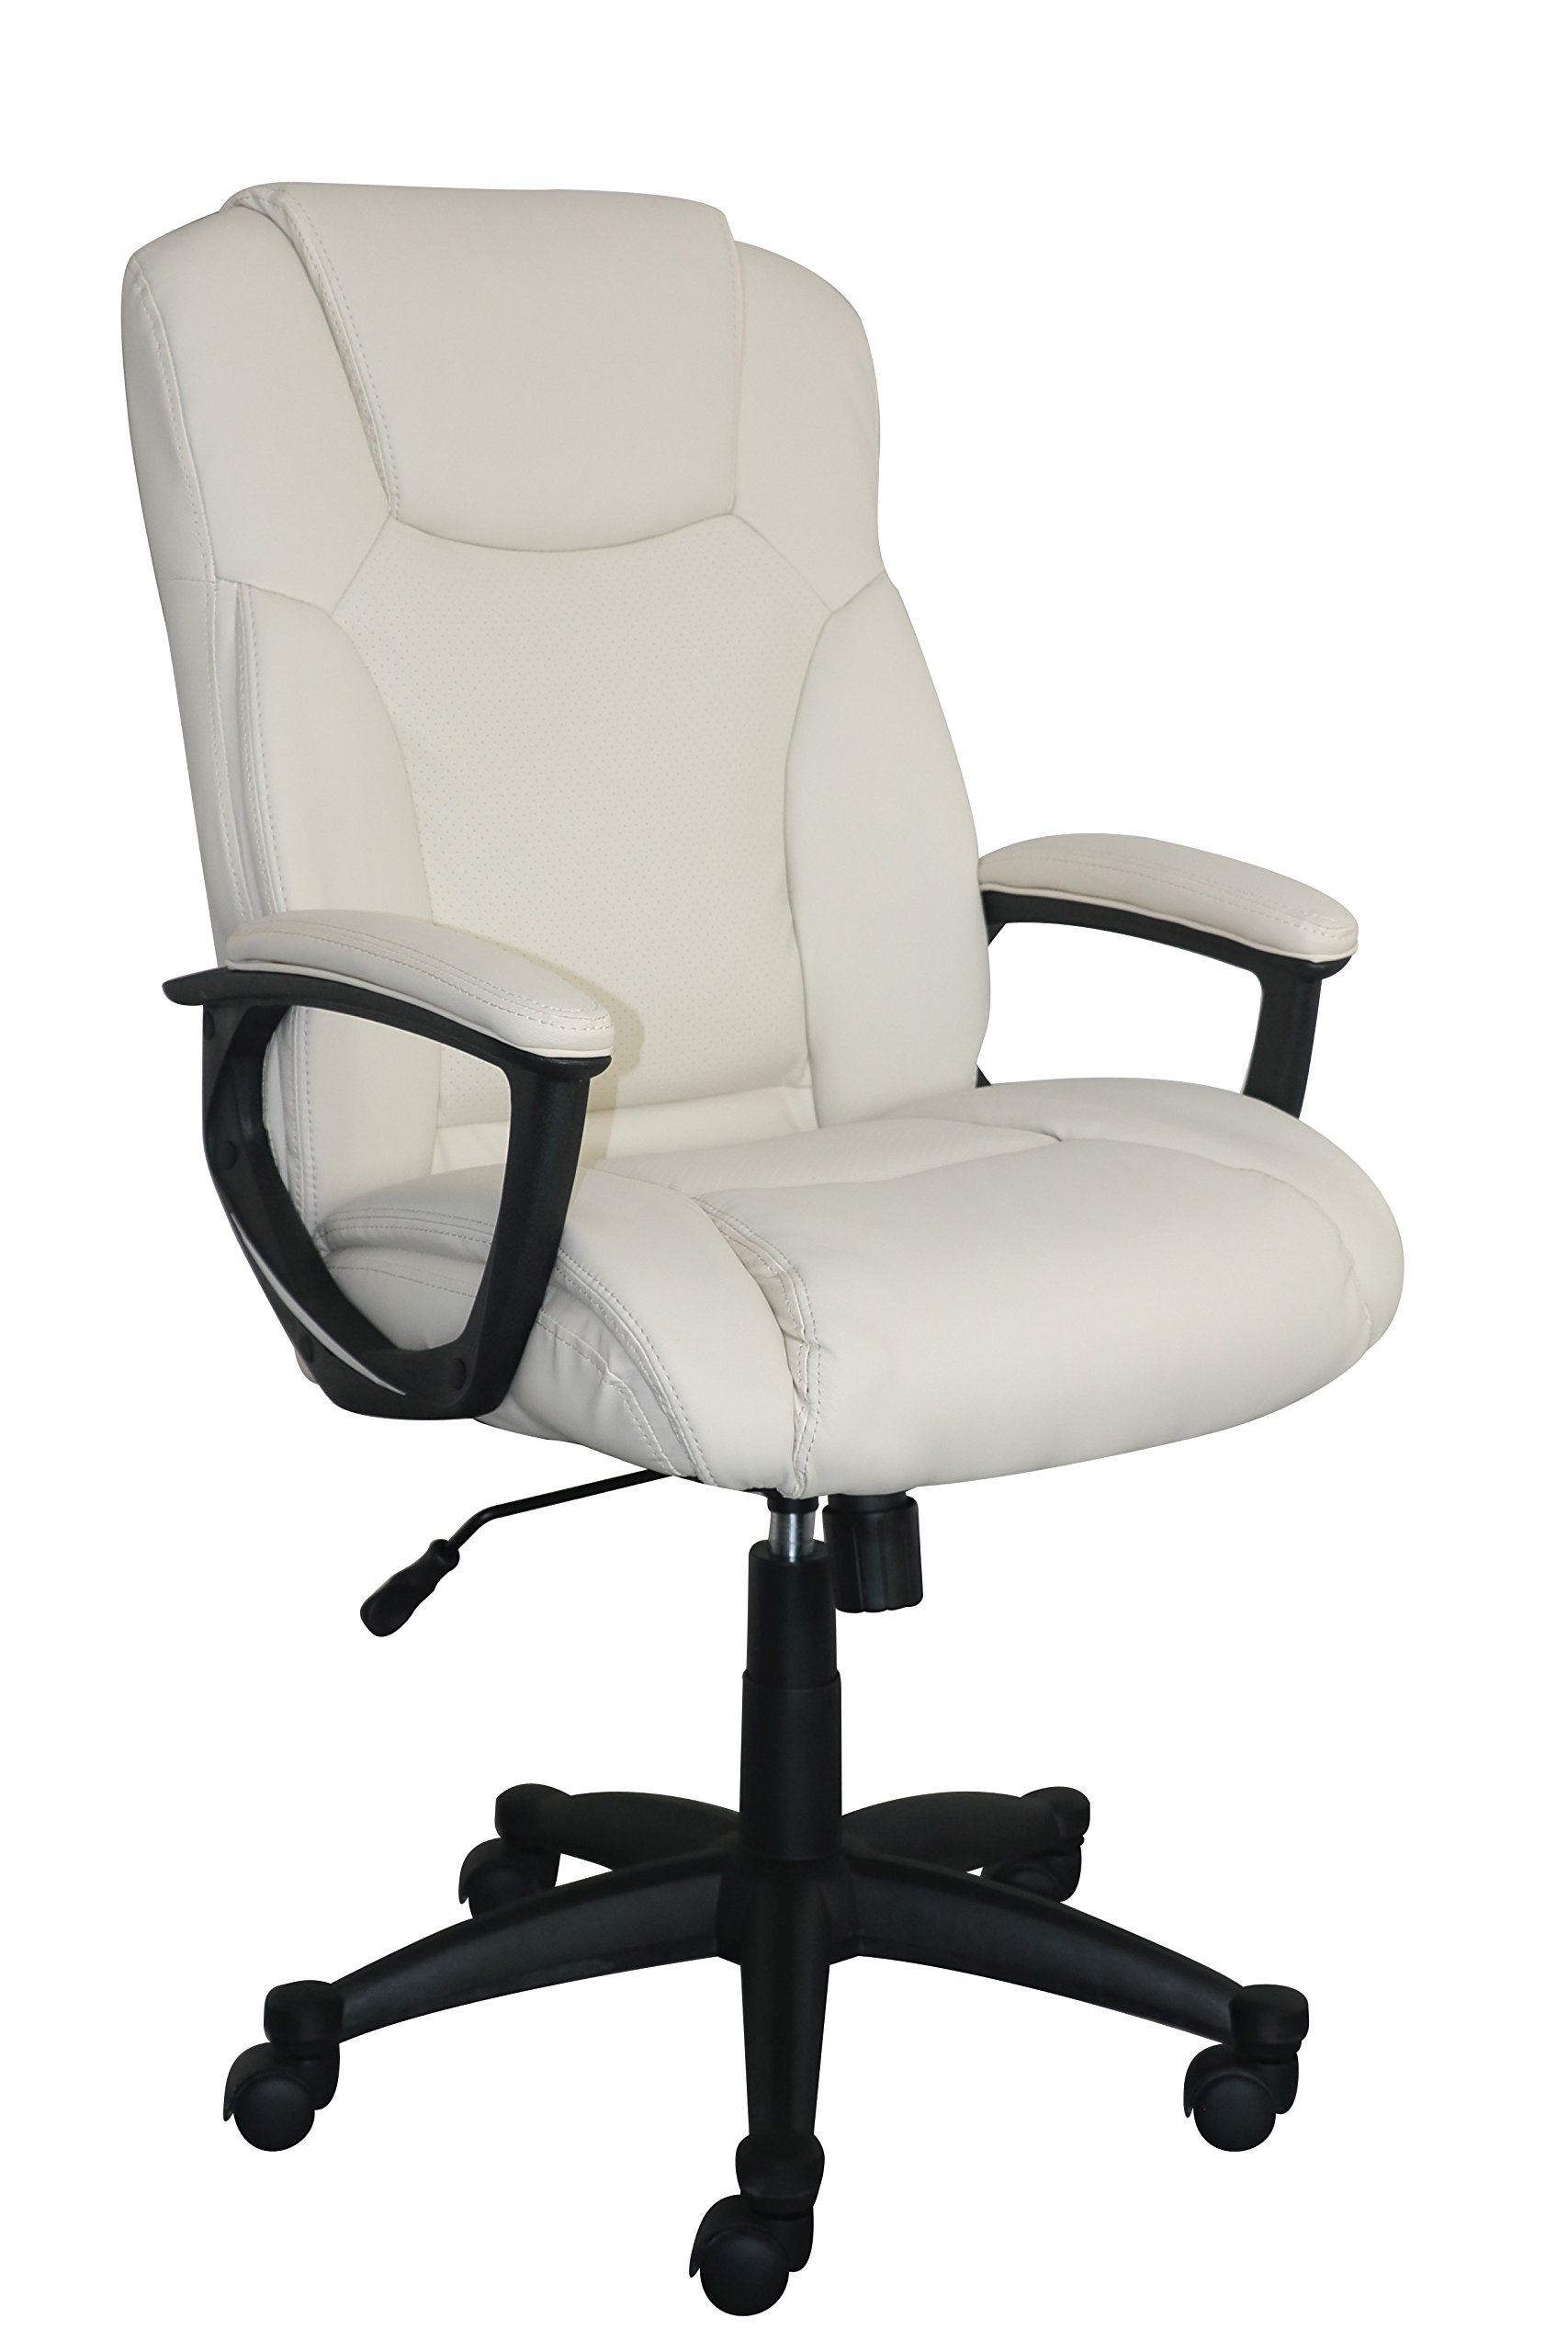 Serta Style Hannah II Office Chair, Bonded Leather, Ivory